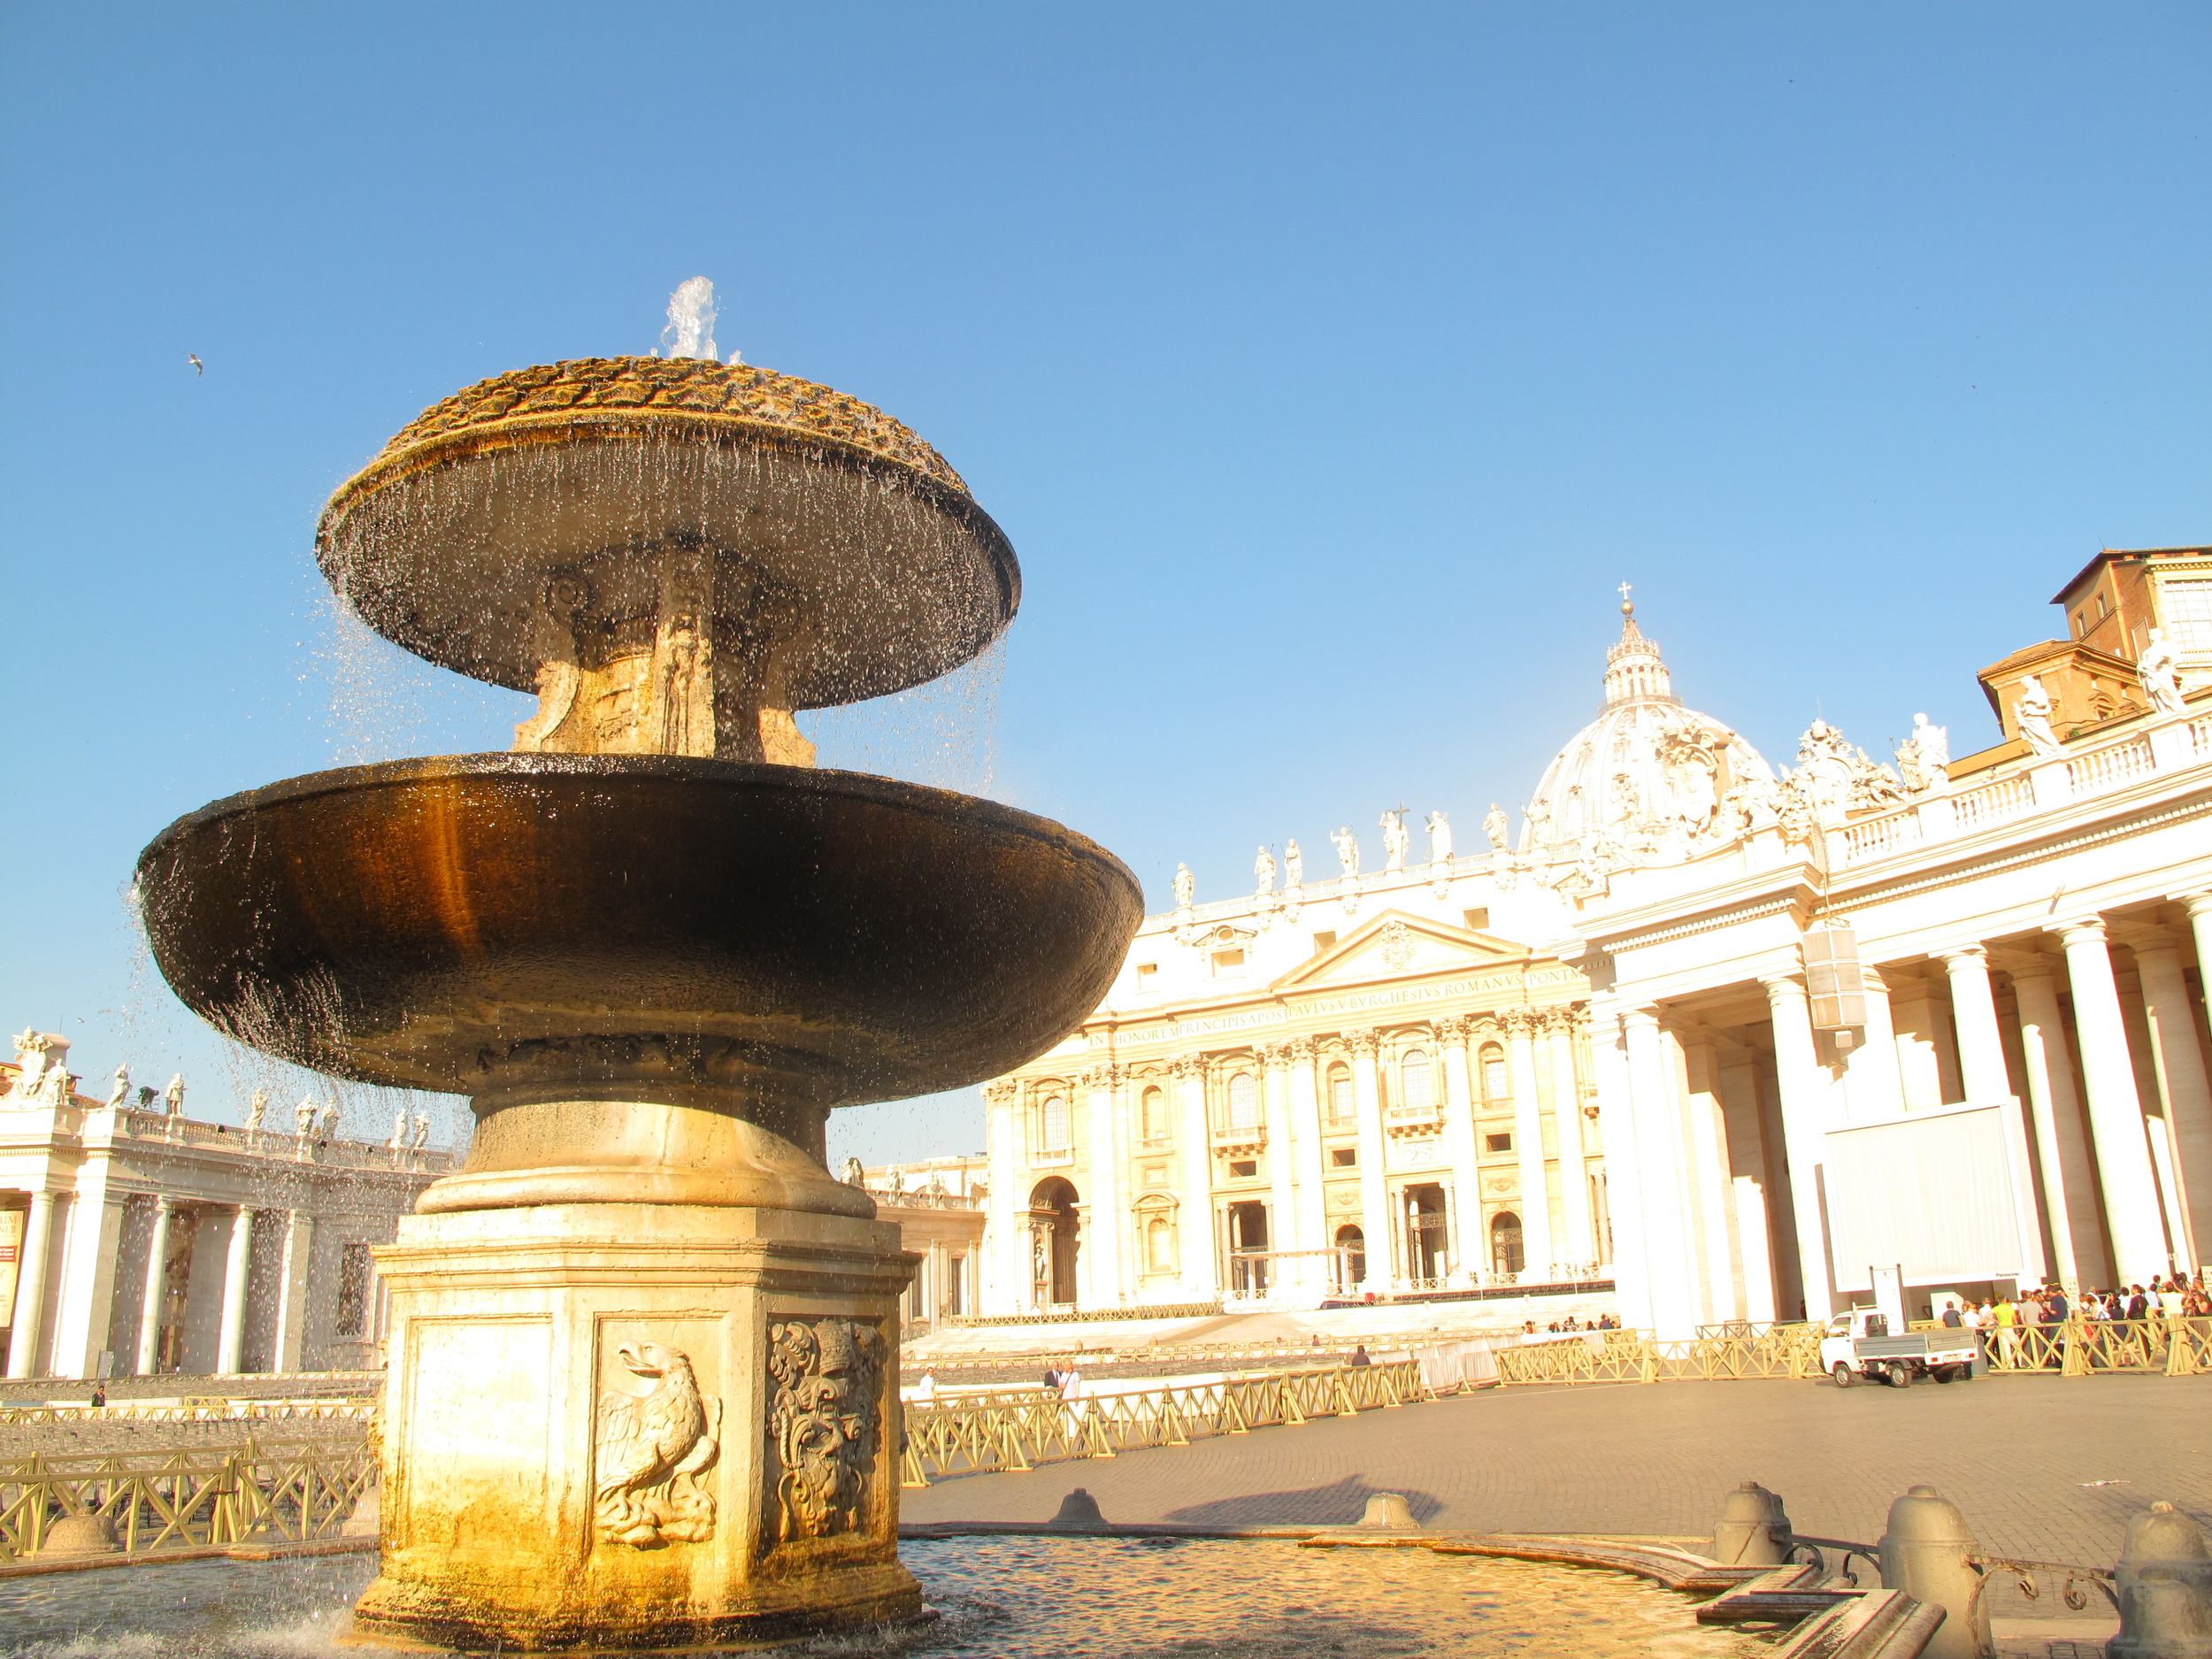 Fountain in the square of St Peter's Basilica